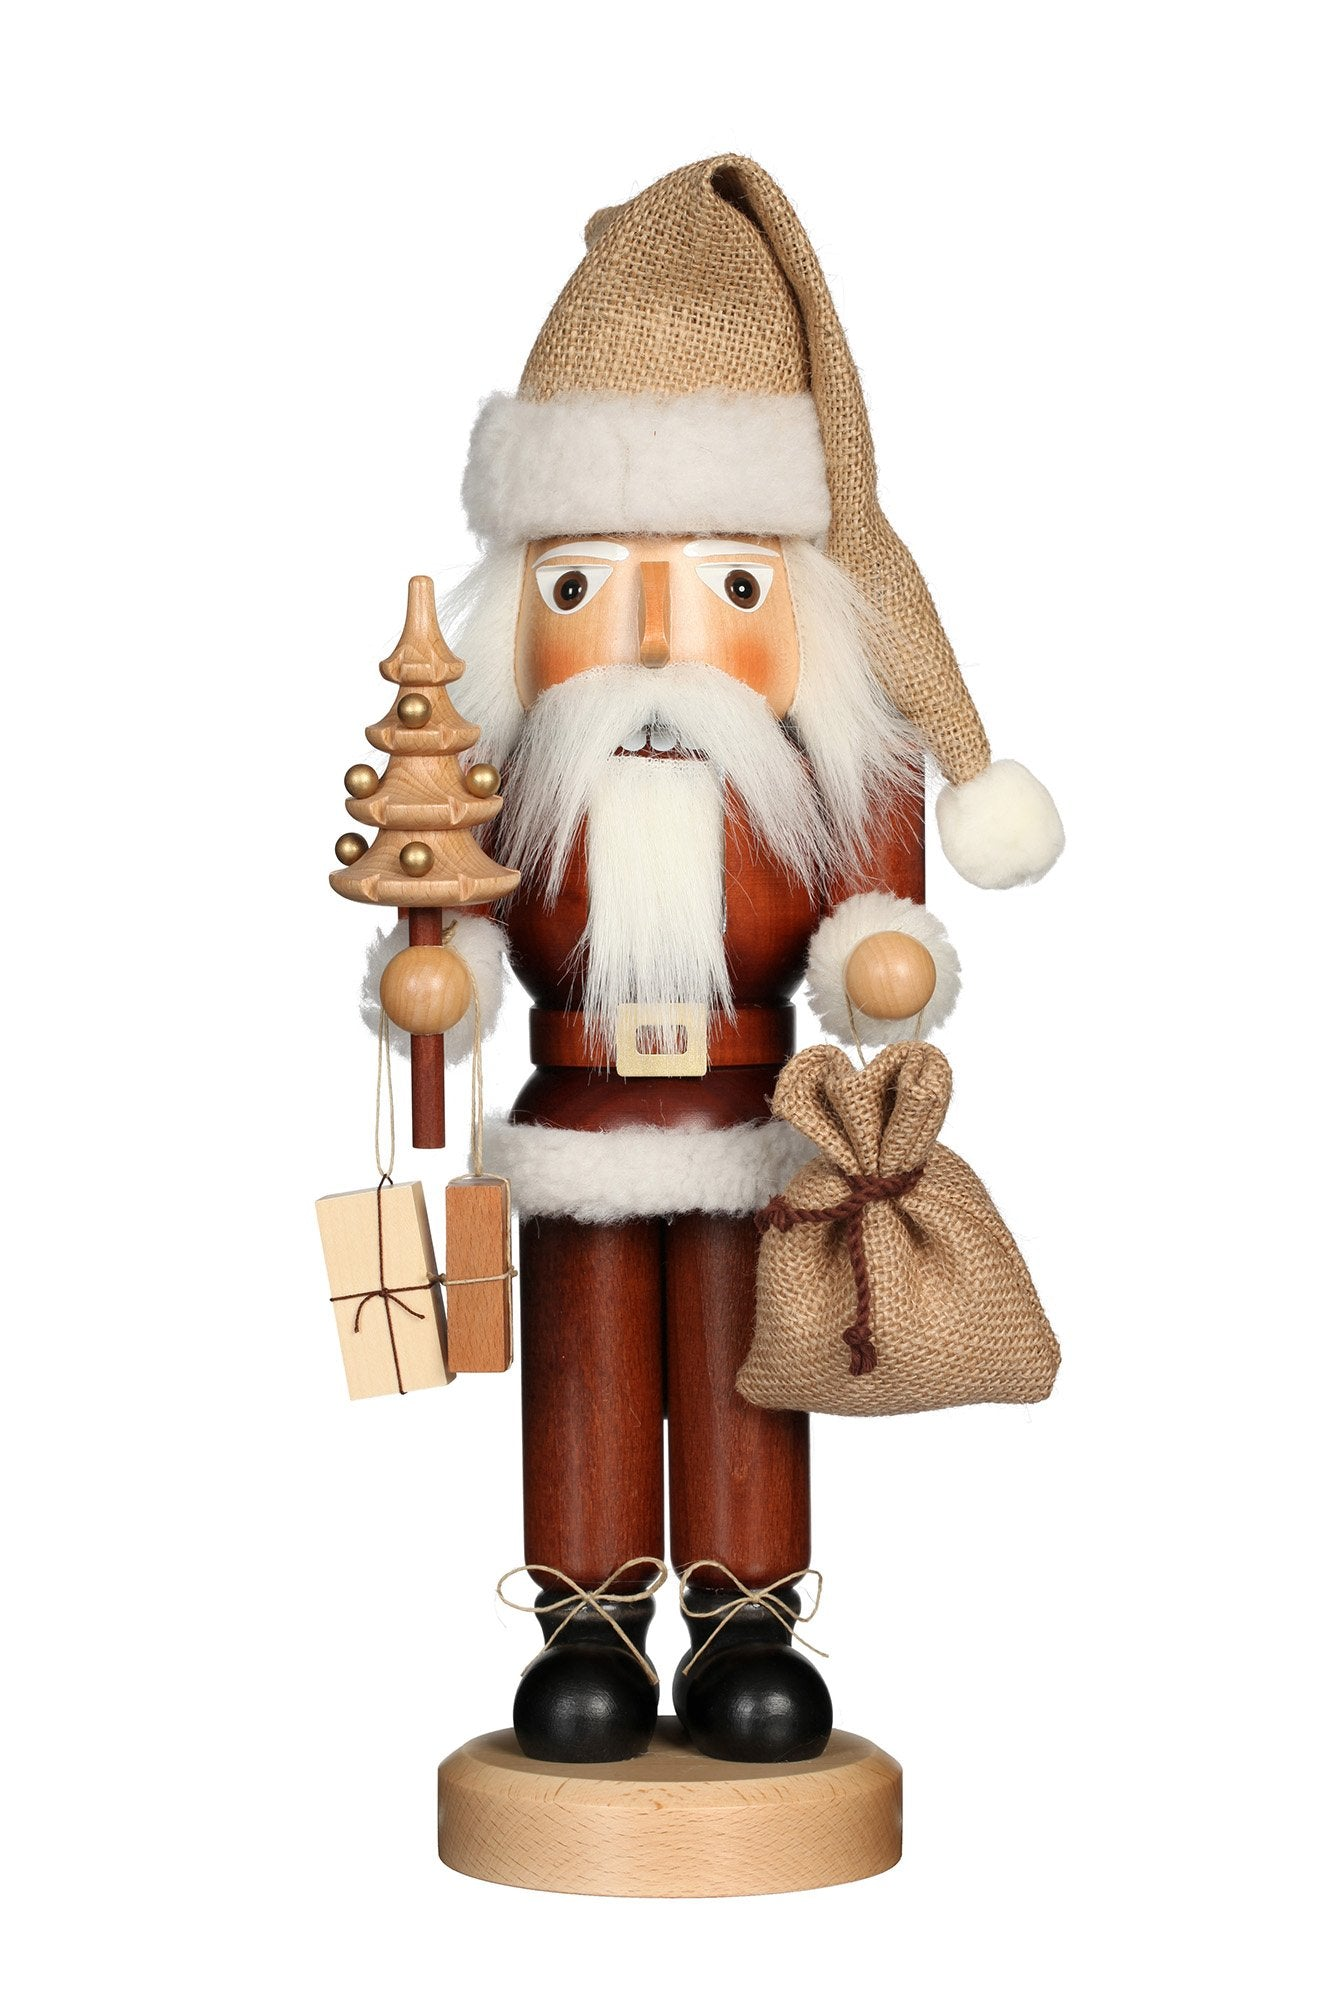 Nutcracker (Classic) - Santa Claus with Presents (Natural)